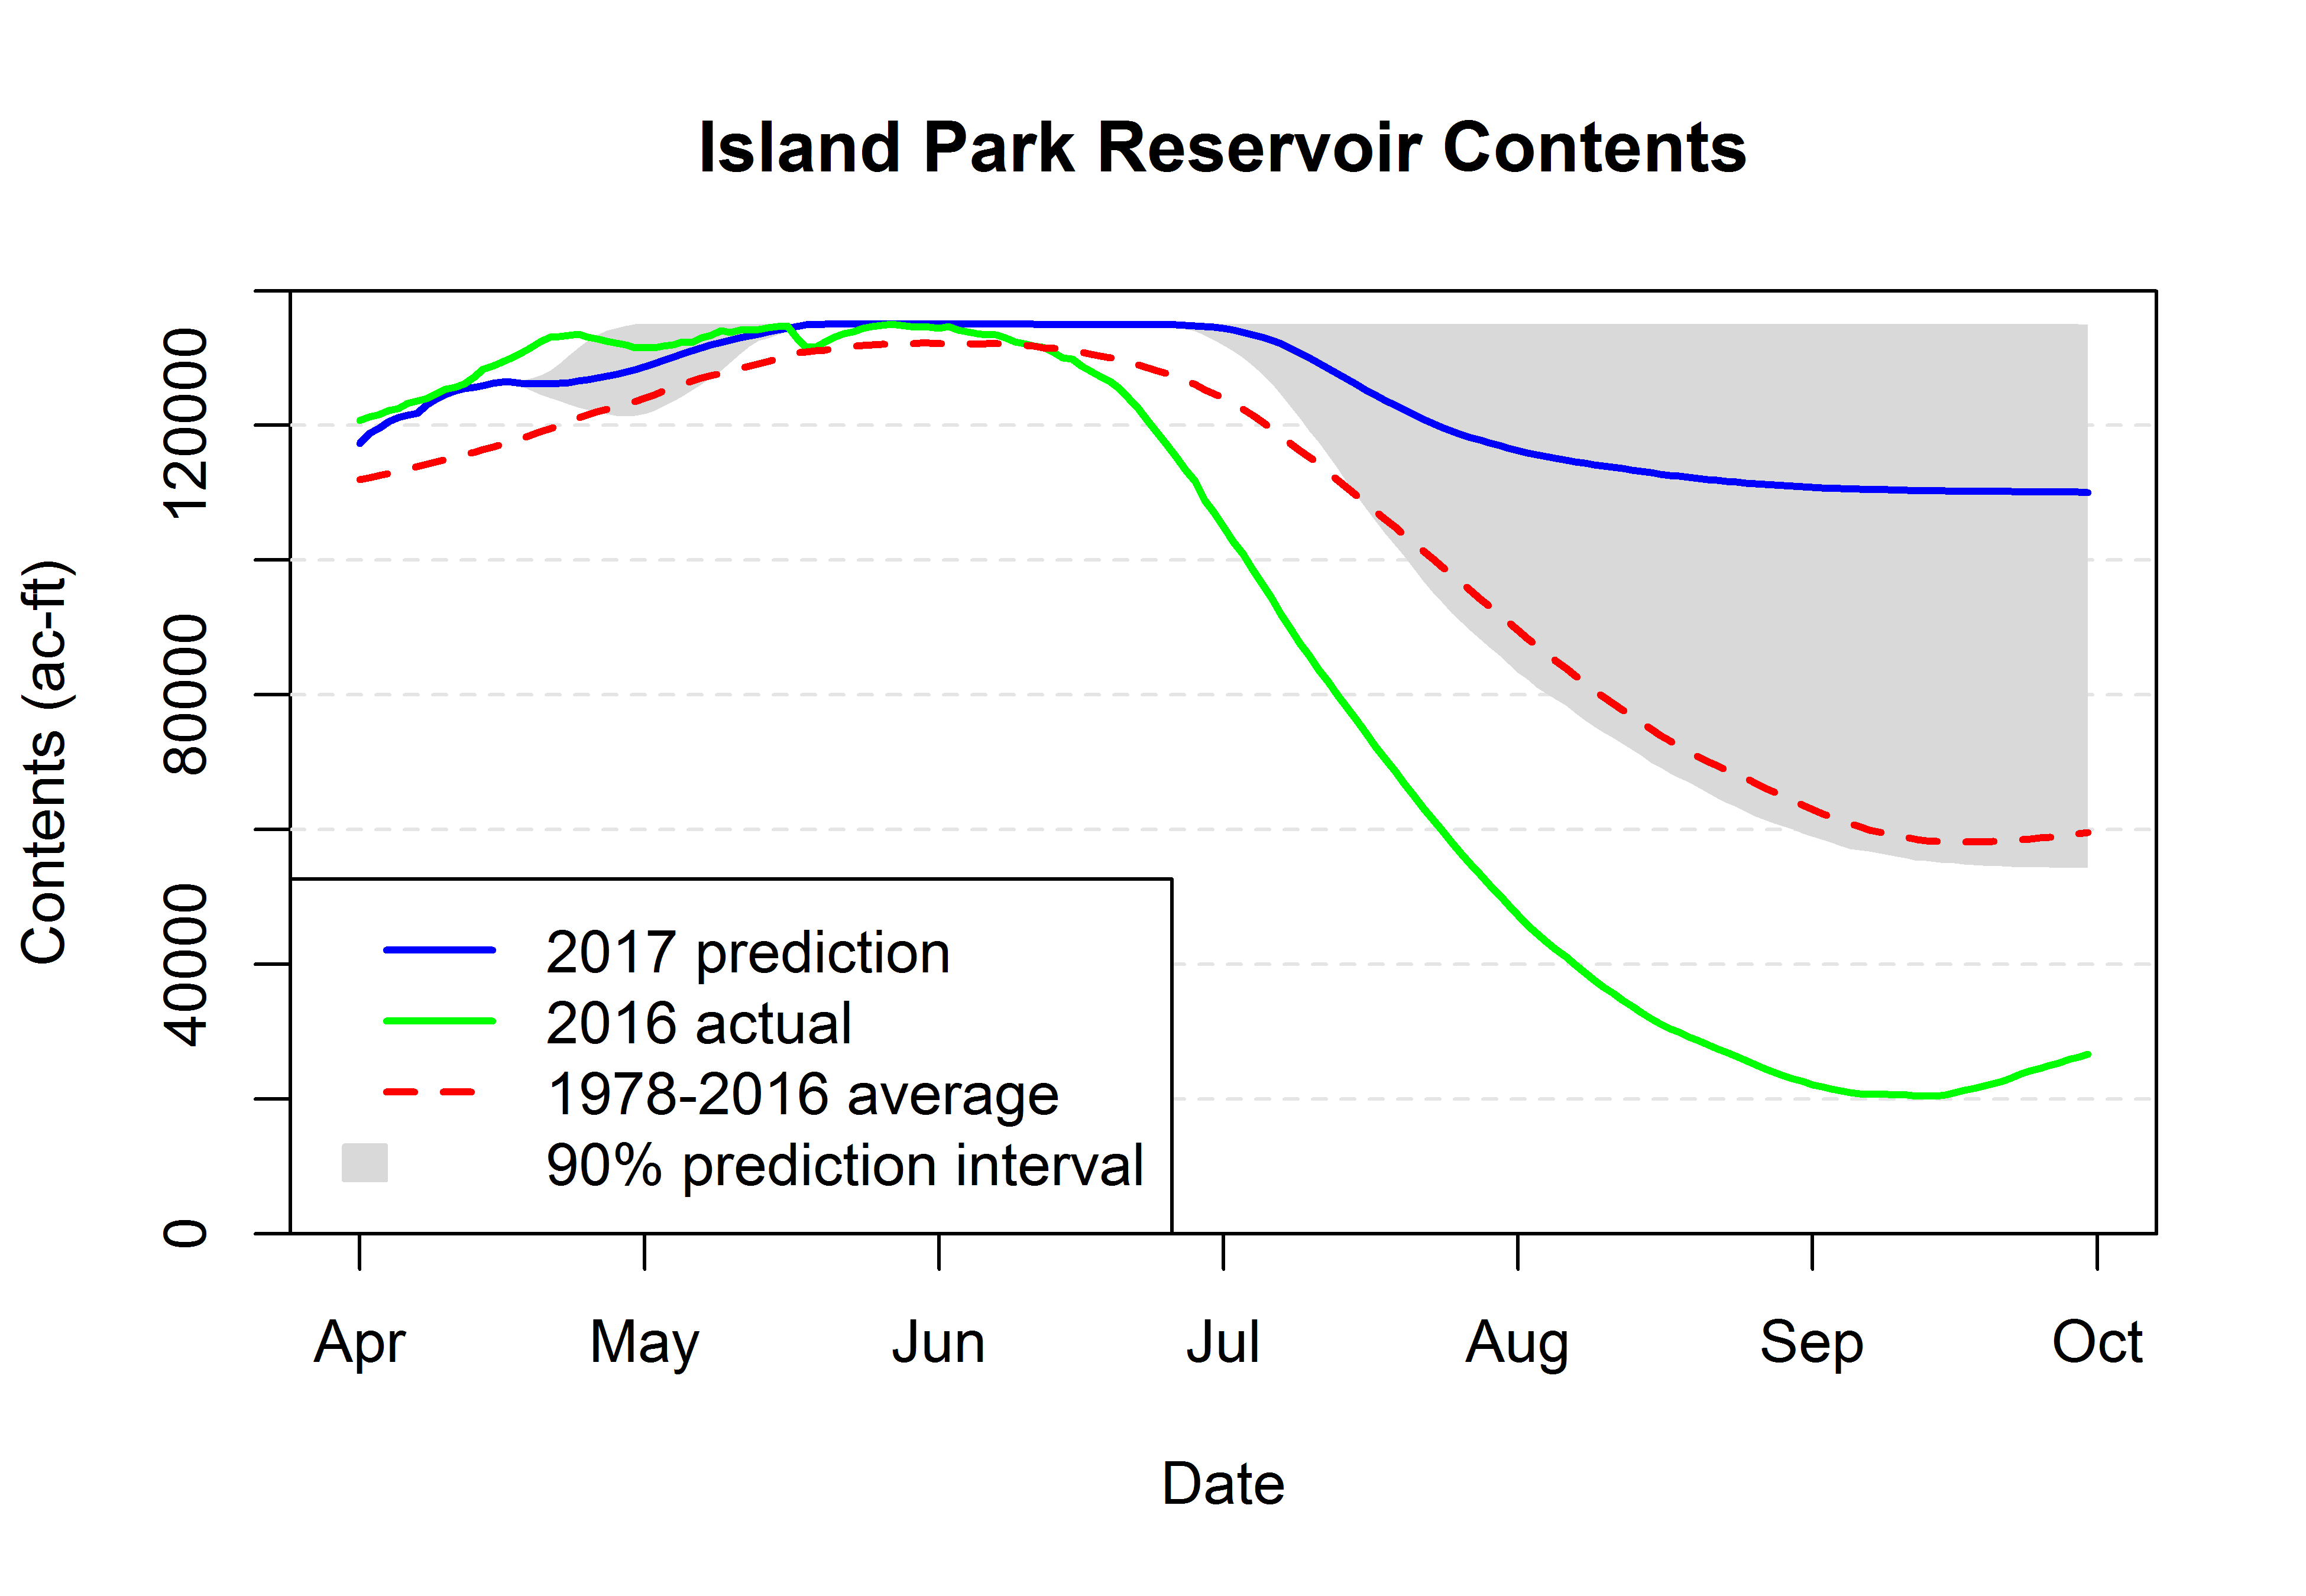 Graph of Island Park Reservoir volume